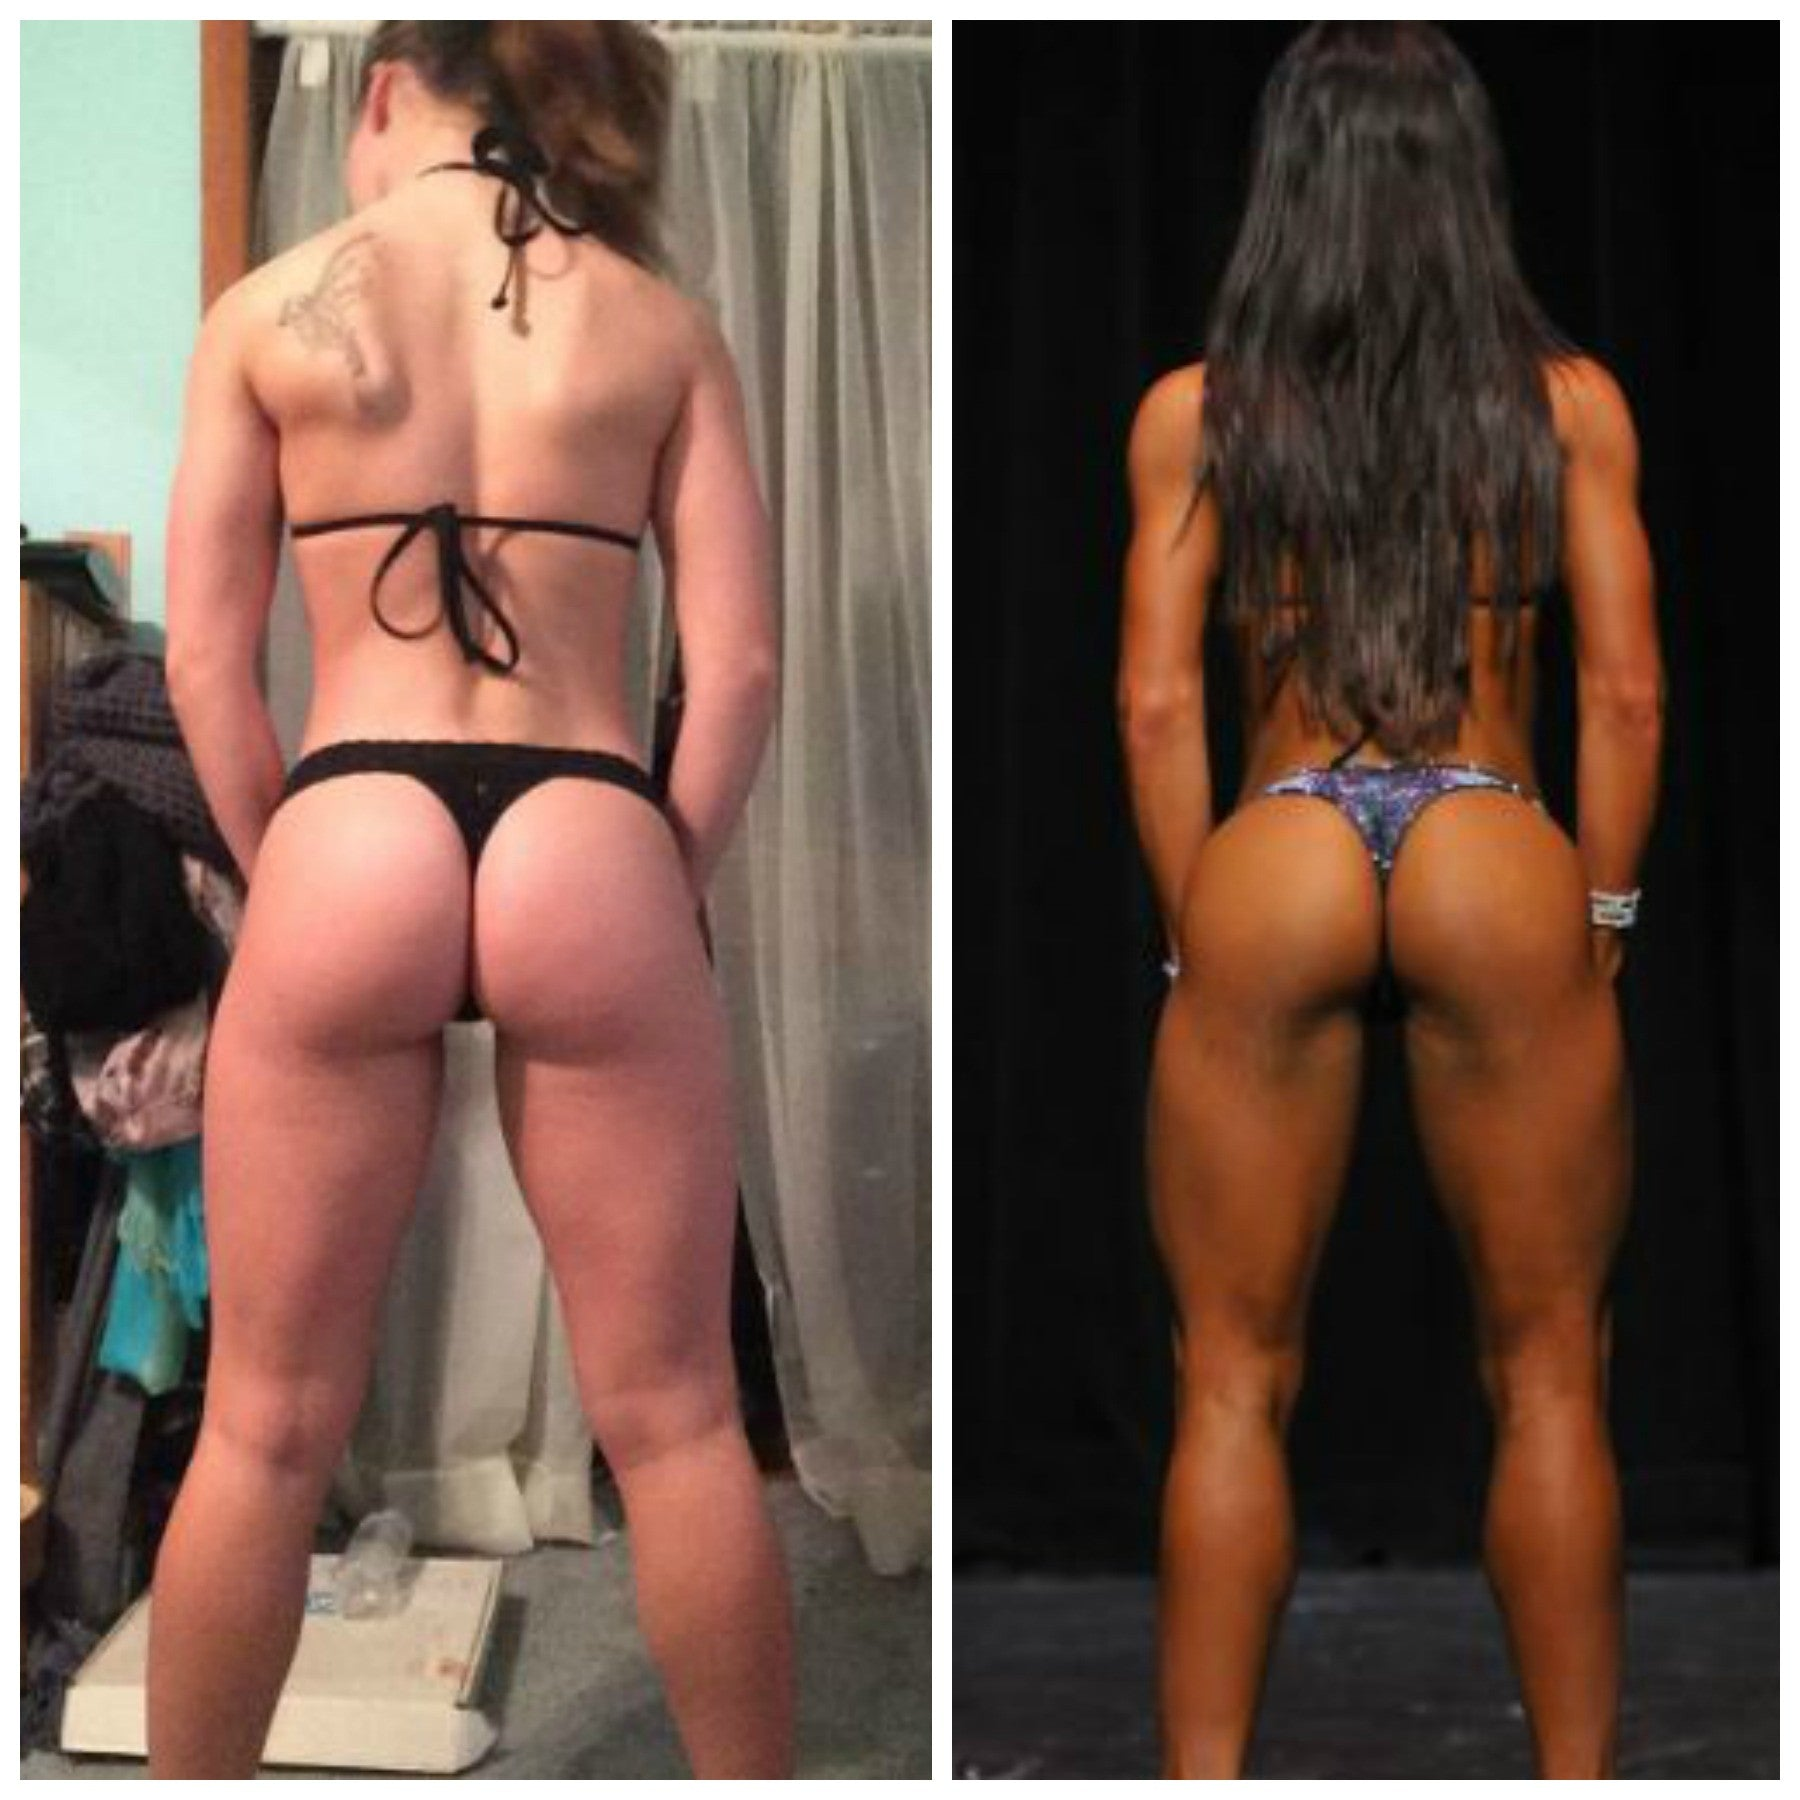 glute training tips for npc bikini competitors, training for an npc bikini competition